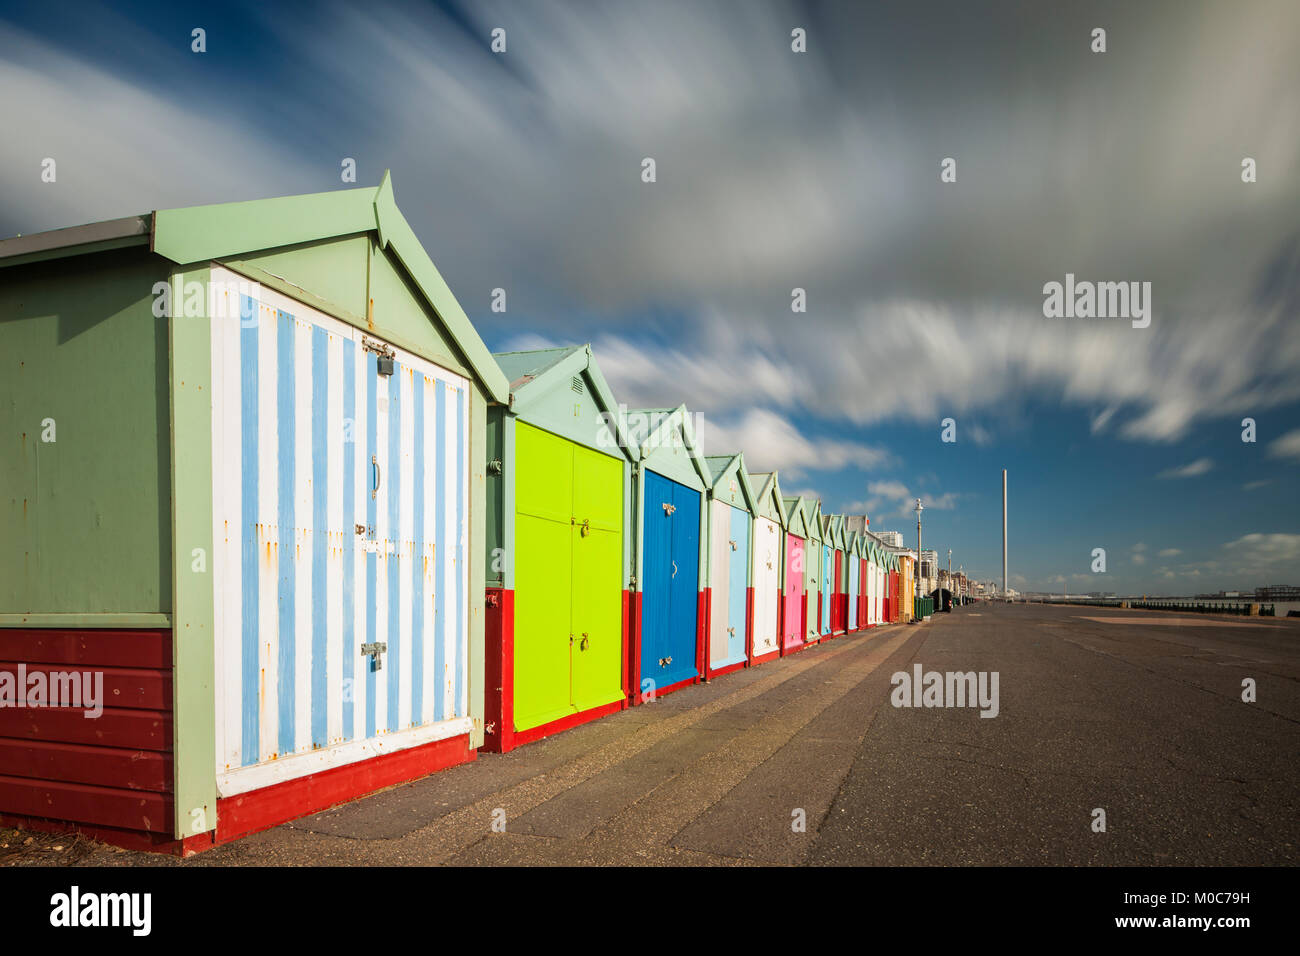 Iconic colourful beach huts on Brighton seafront, East Sussex, England. - Stock Image